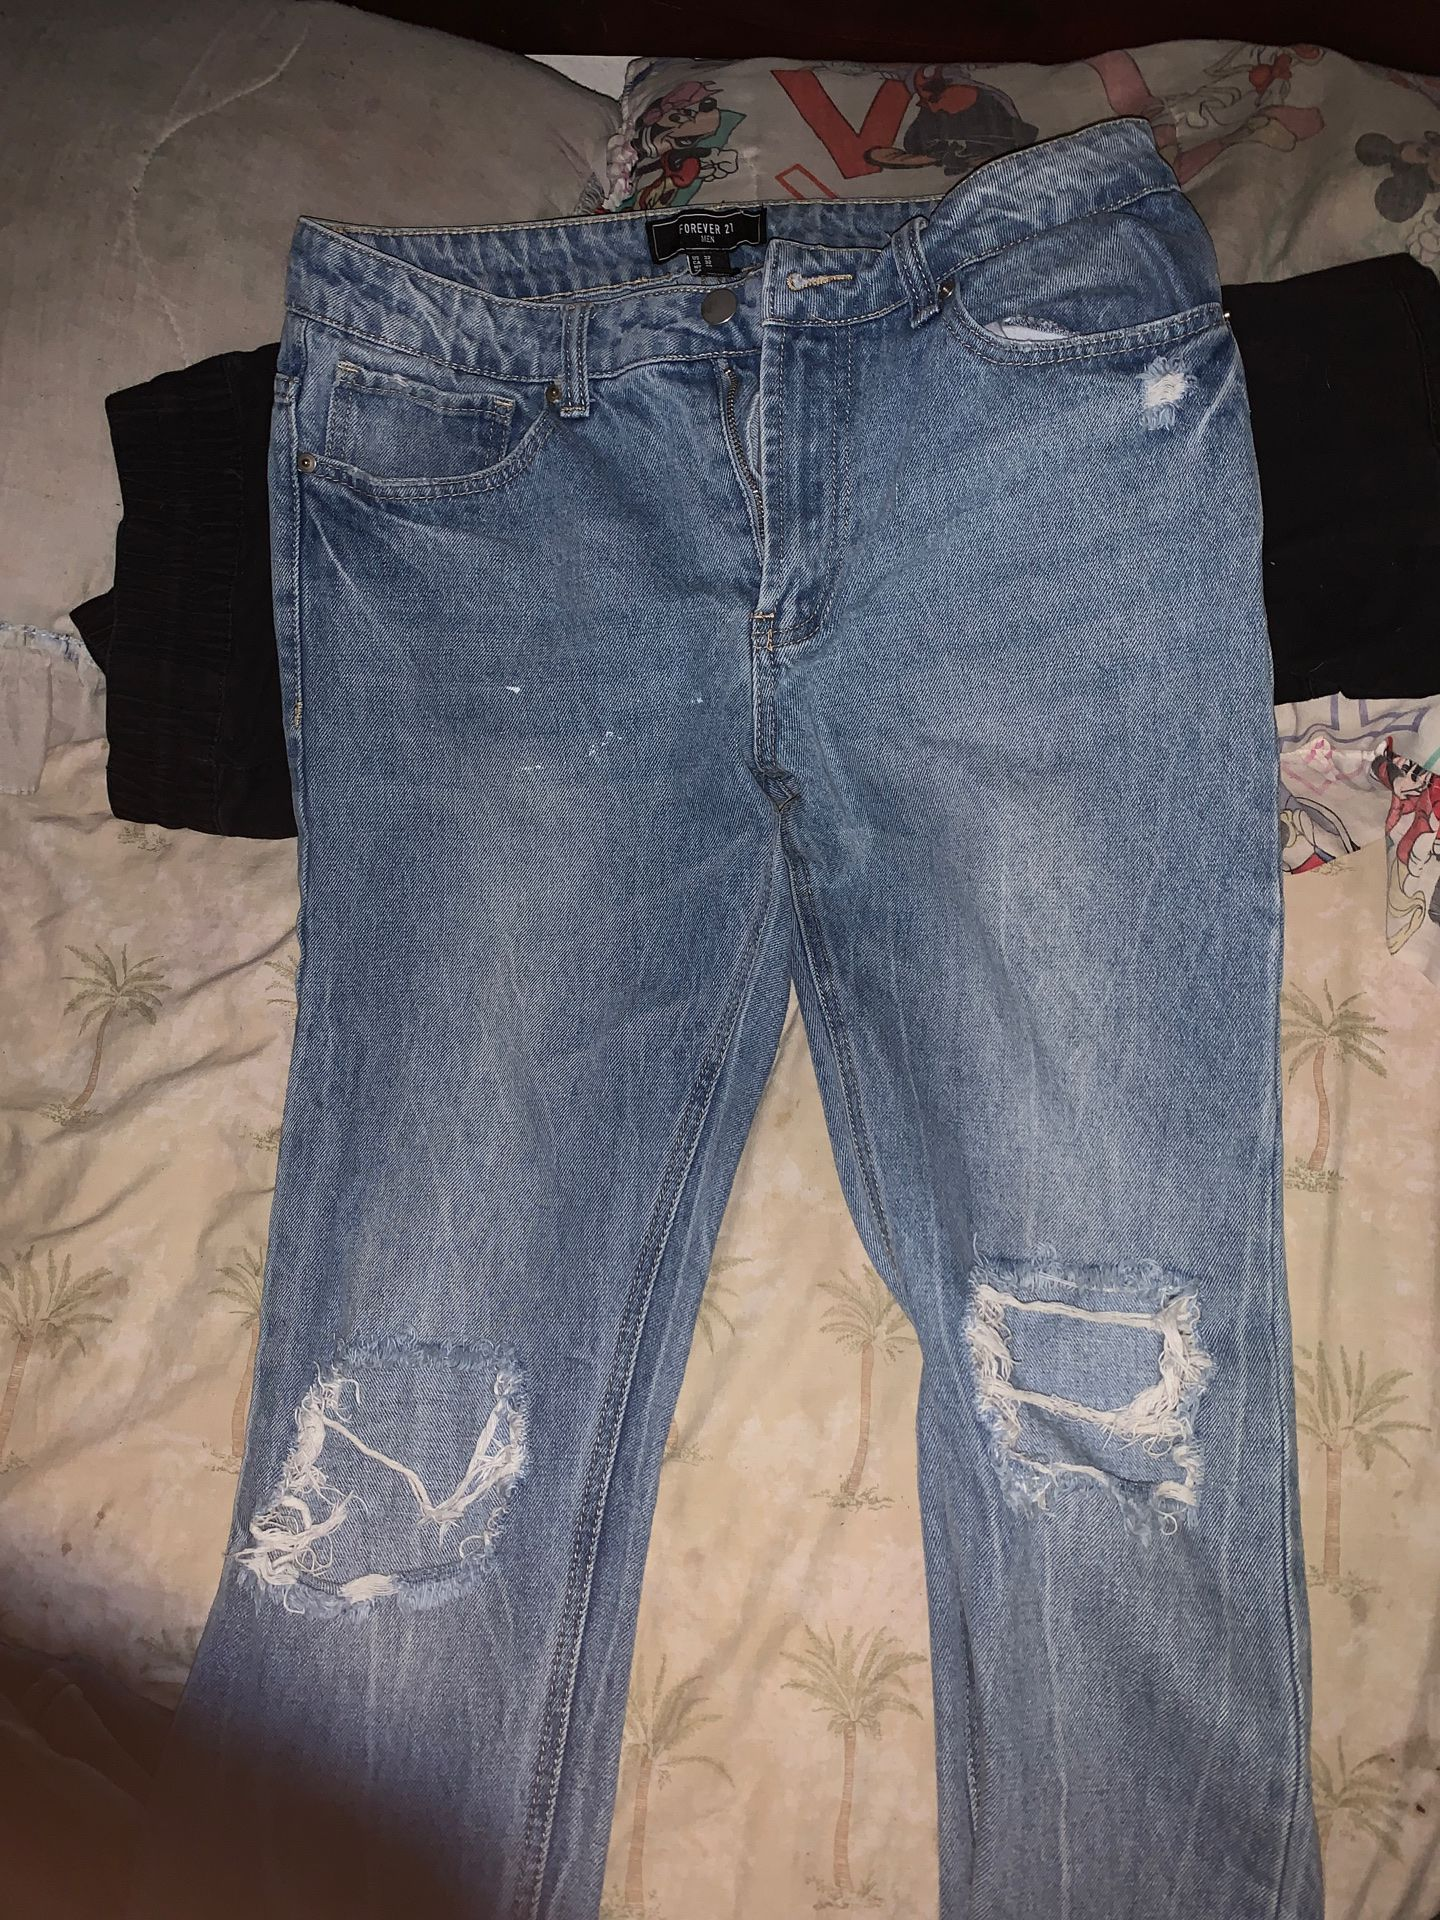 3 pairs of jeans for 80$